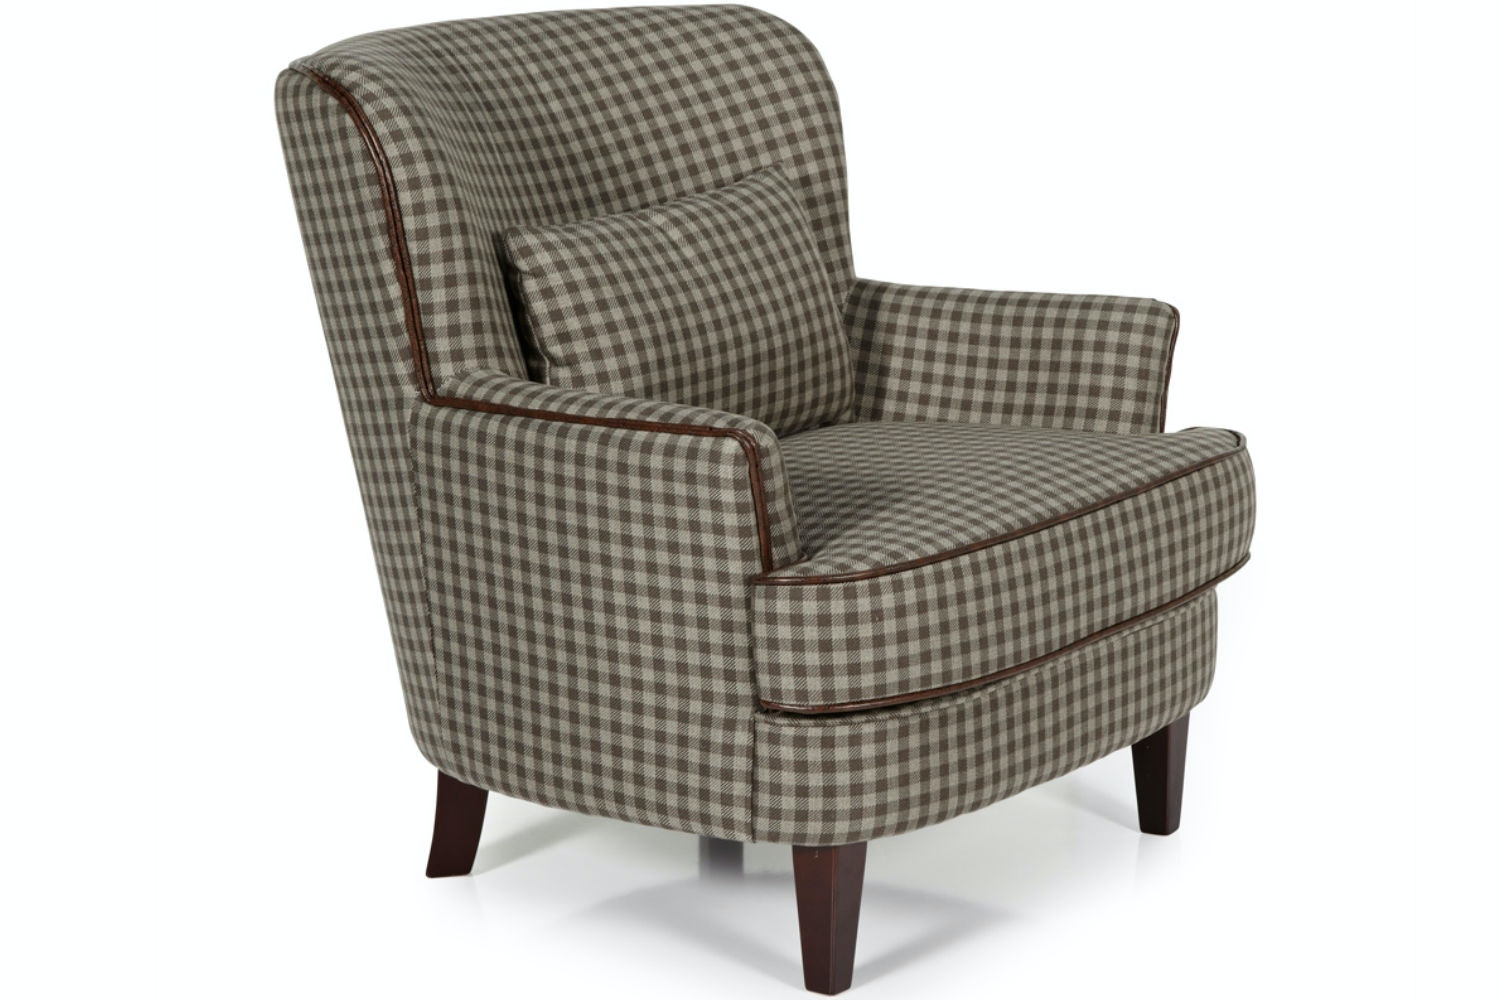 Trafalgar Bedroom Chair Brown